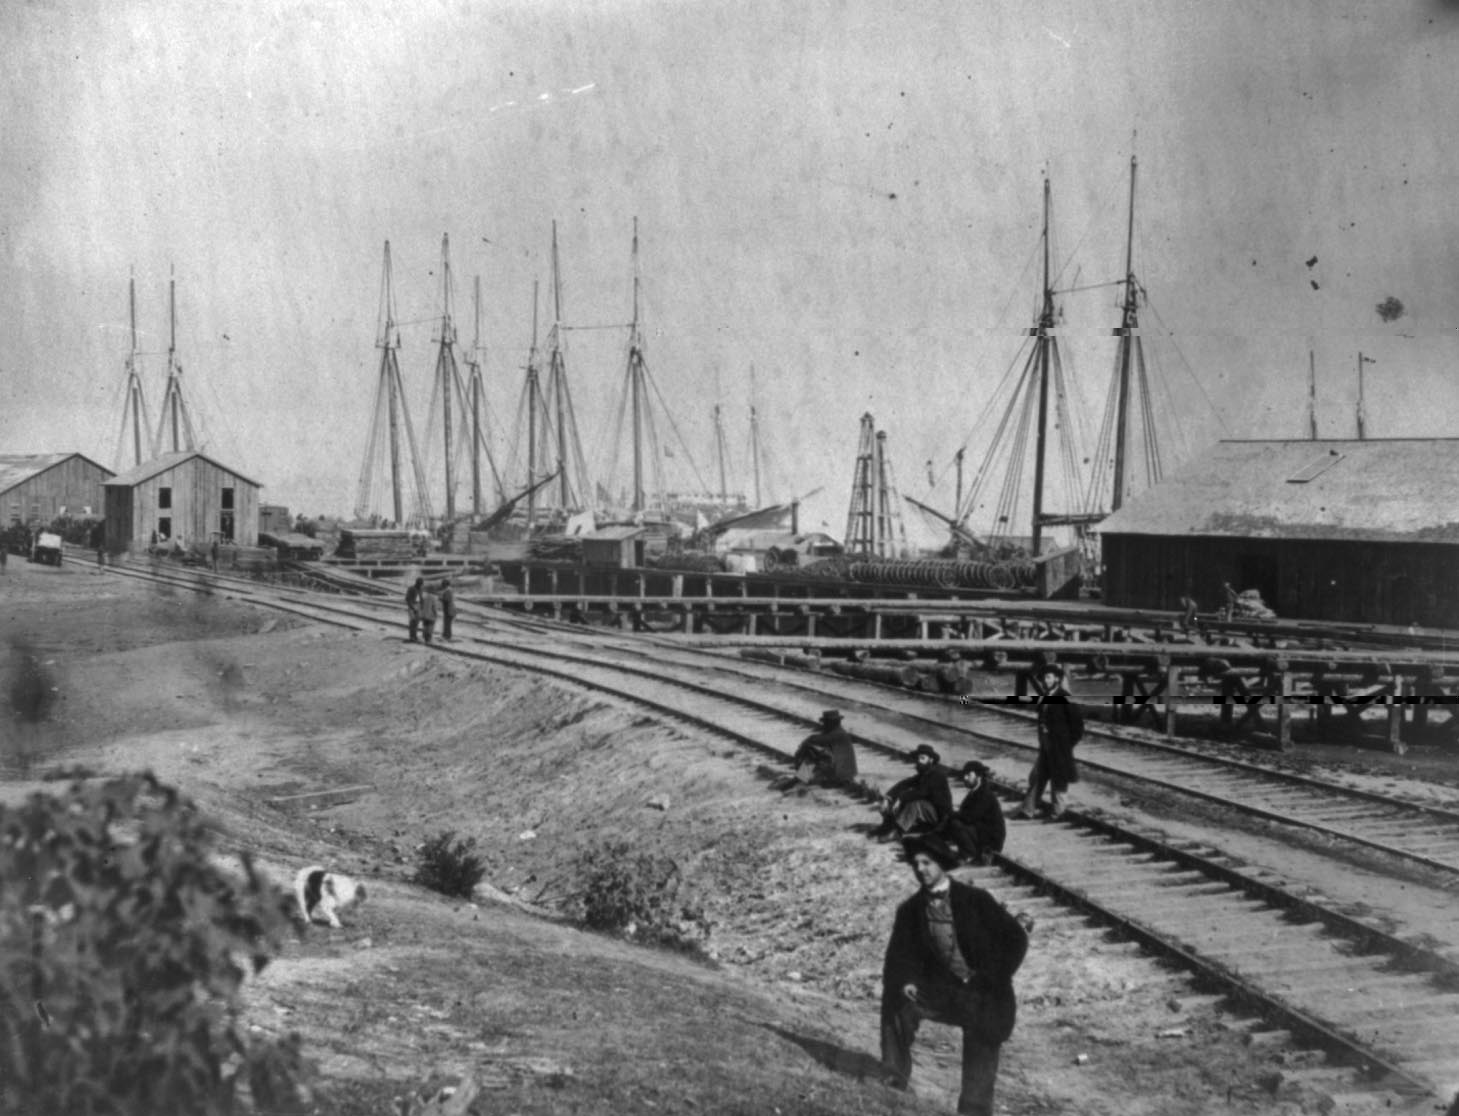 acquia or aquia creek dock around 1864